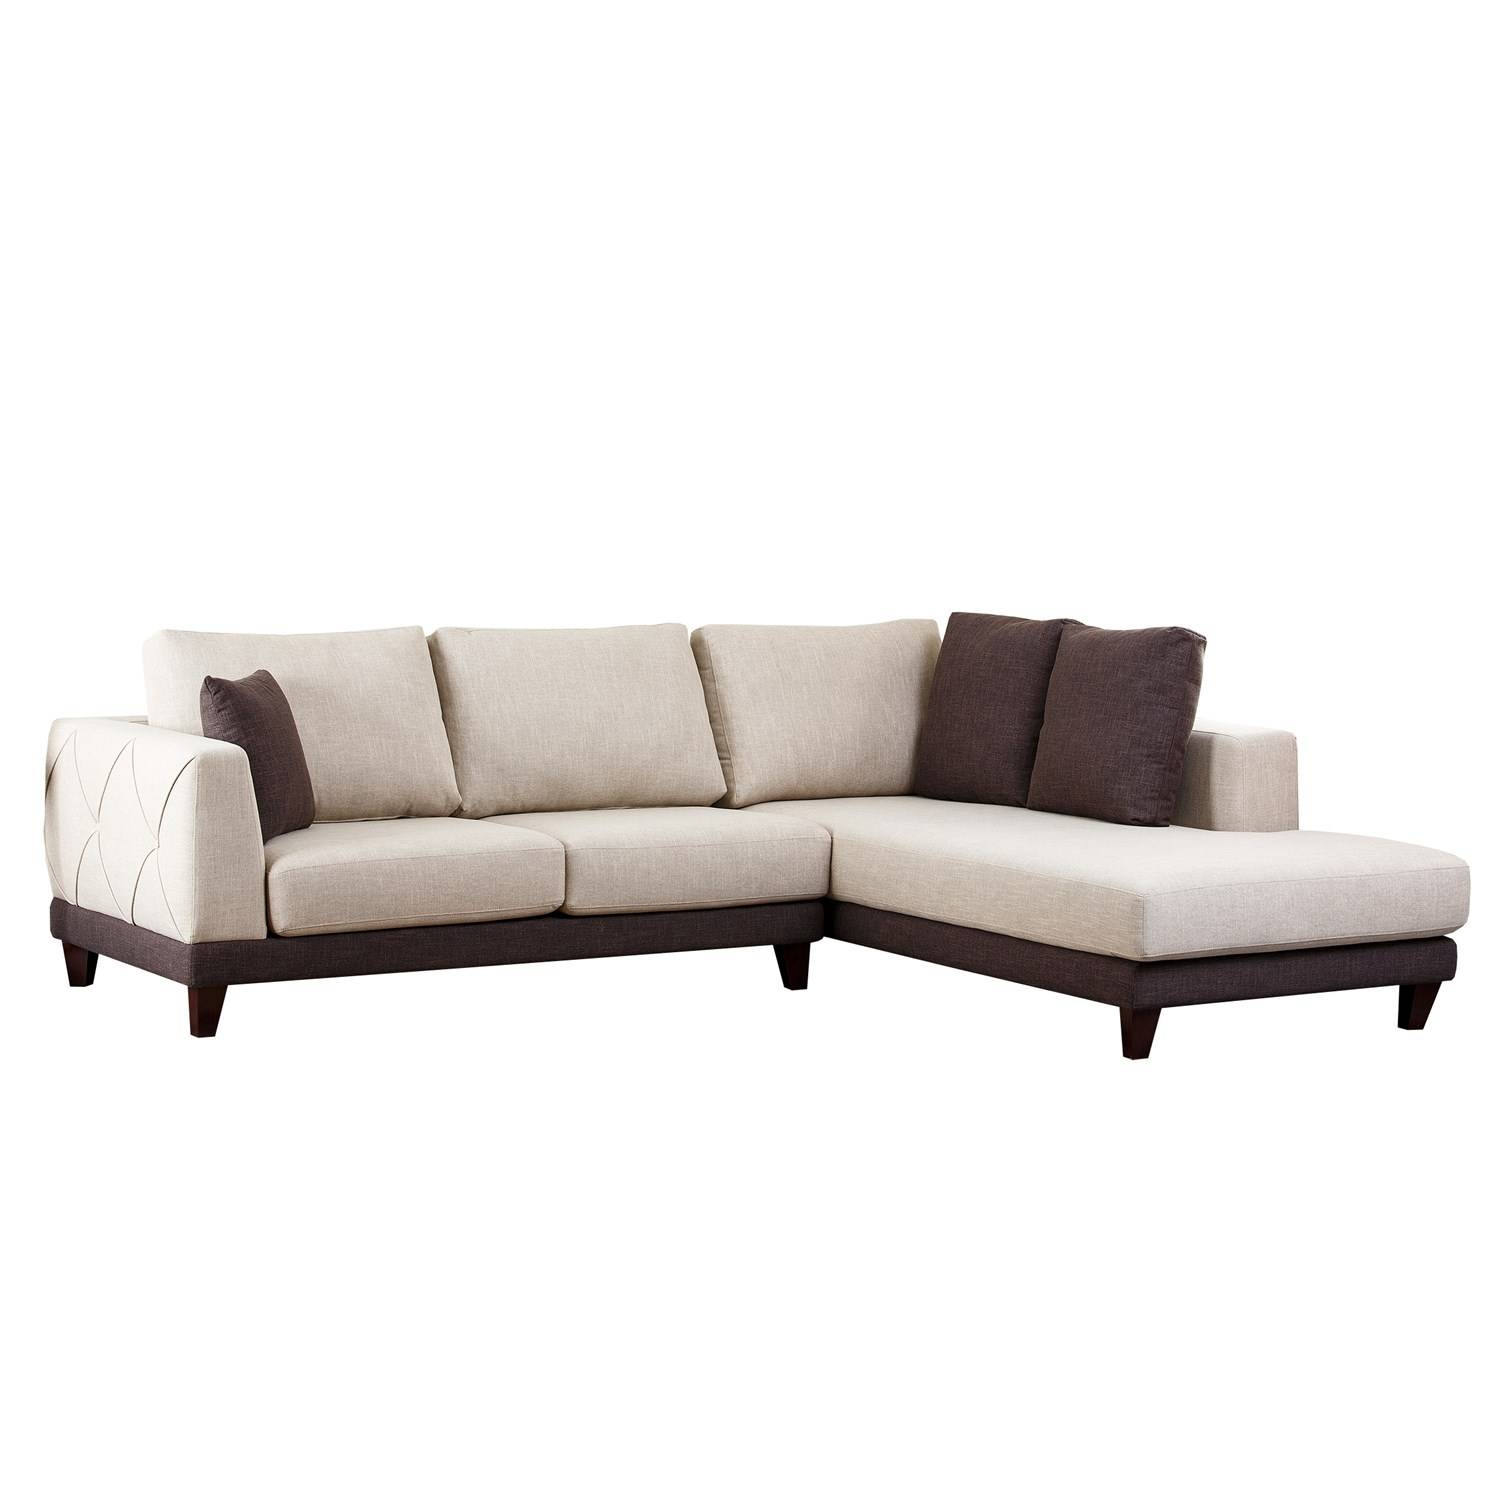 Abbyson Sectional Sofa | Jinanhongyu pertaining to Abbyson Sectional Sofa (Image 19 of 30)